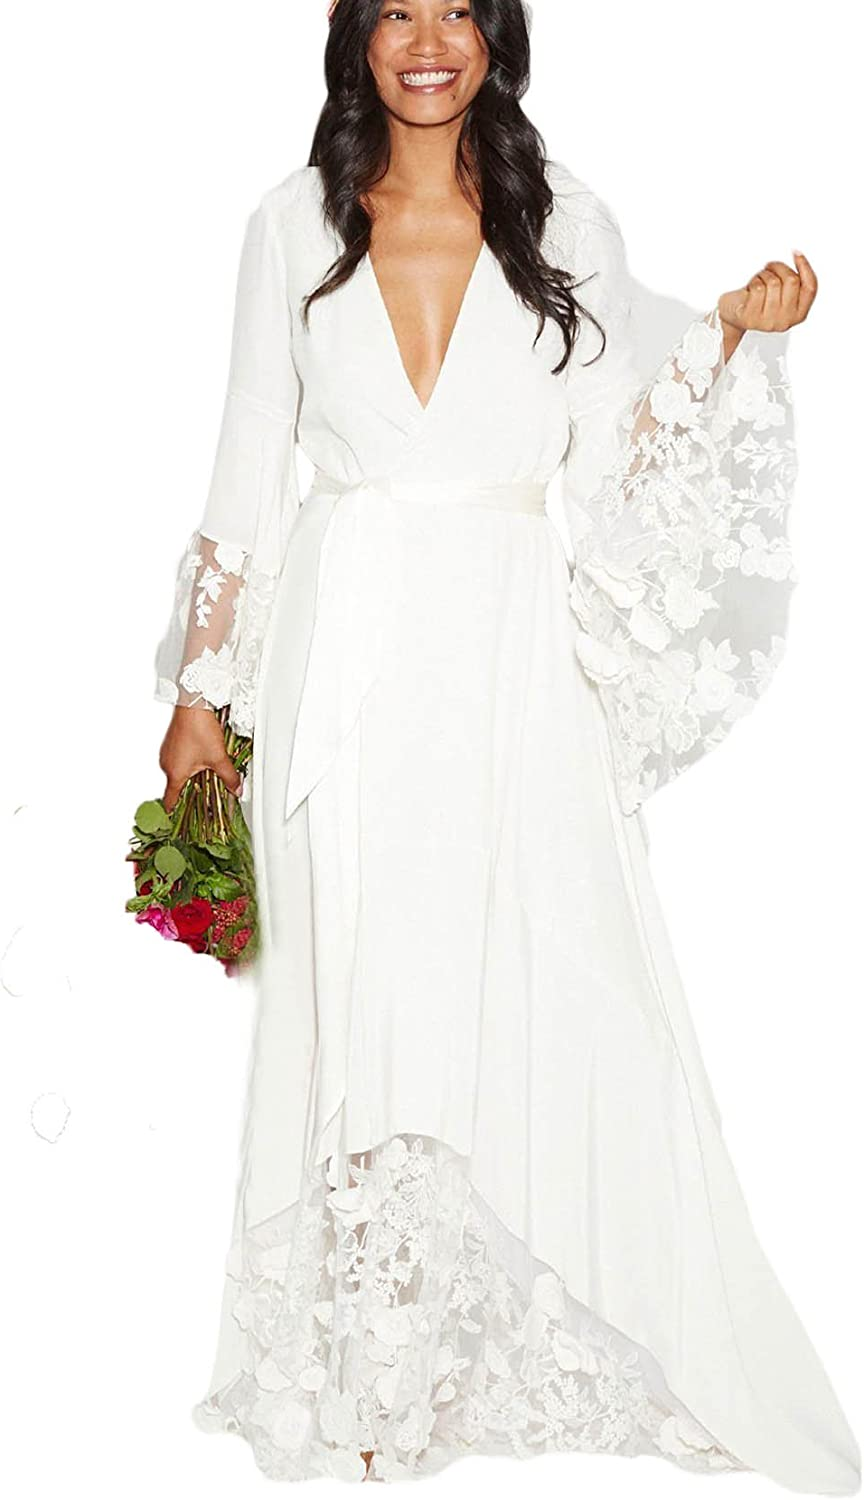 Dressesonline Women S Lace Chiffon Bohemian Wedding Dresses V Neck Beach Wedding Gowns With Long Sleeves At Amazon Women S Clothing Store